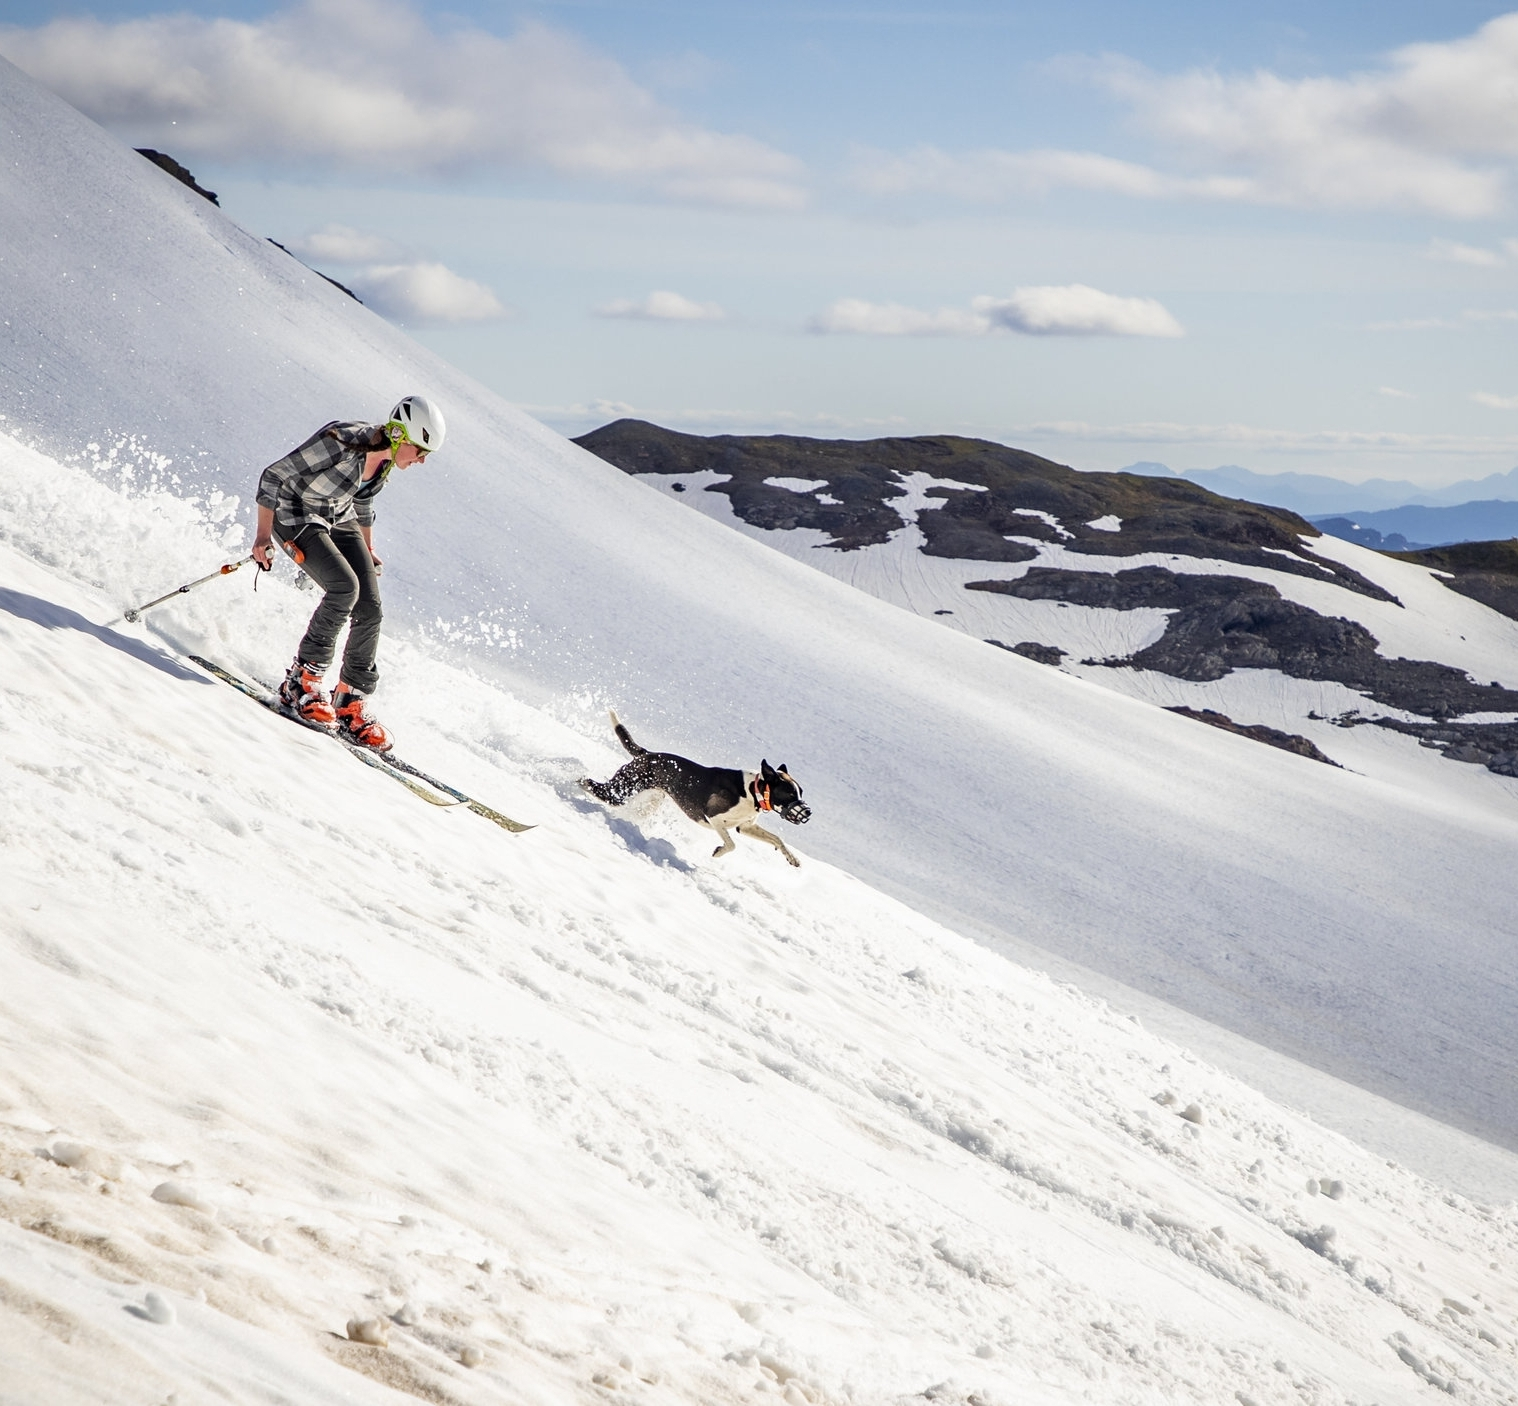 Dixie and Annie go for an evening ski on the Ptarmigan Glacier. Photo: Andrew Opila.